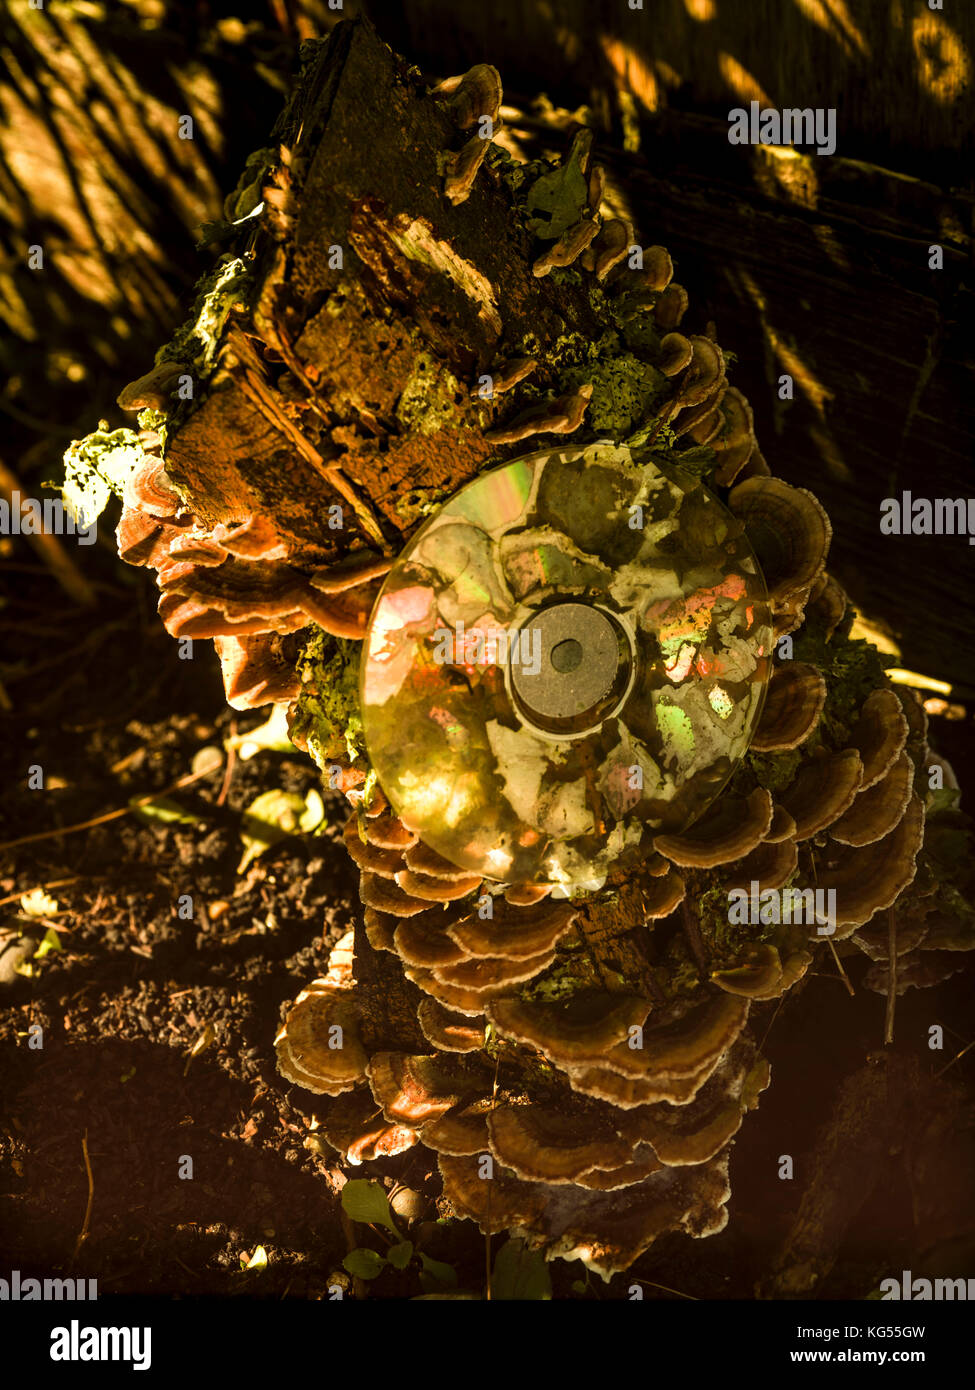 Compact disc covered in fungus on tree stump - Stock Image